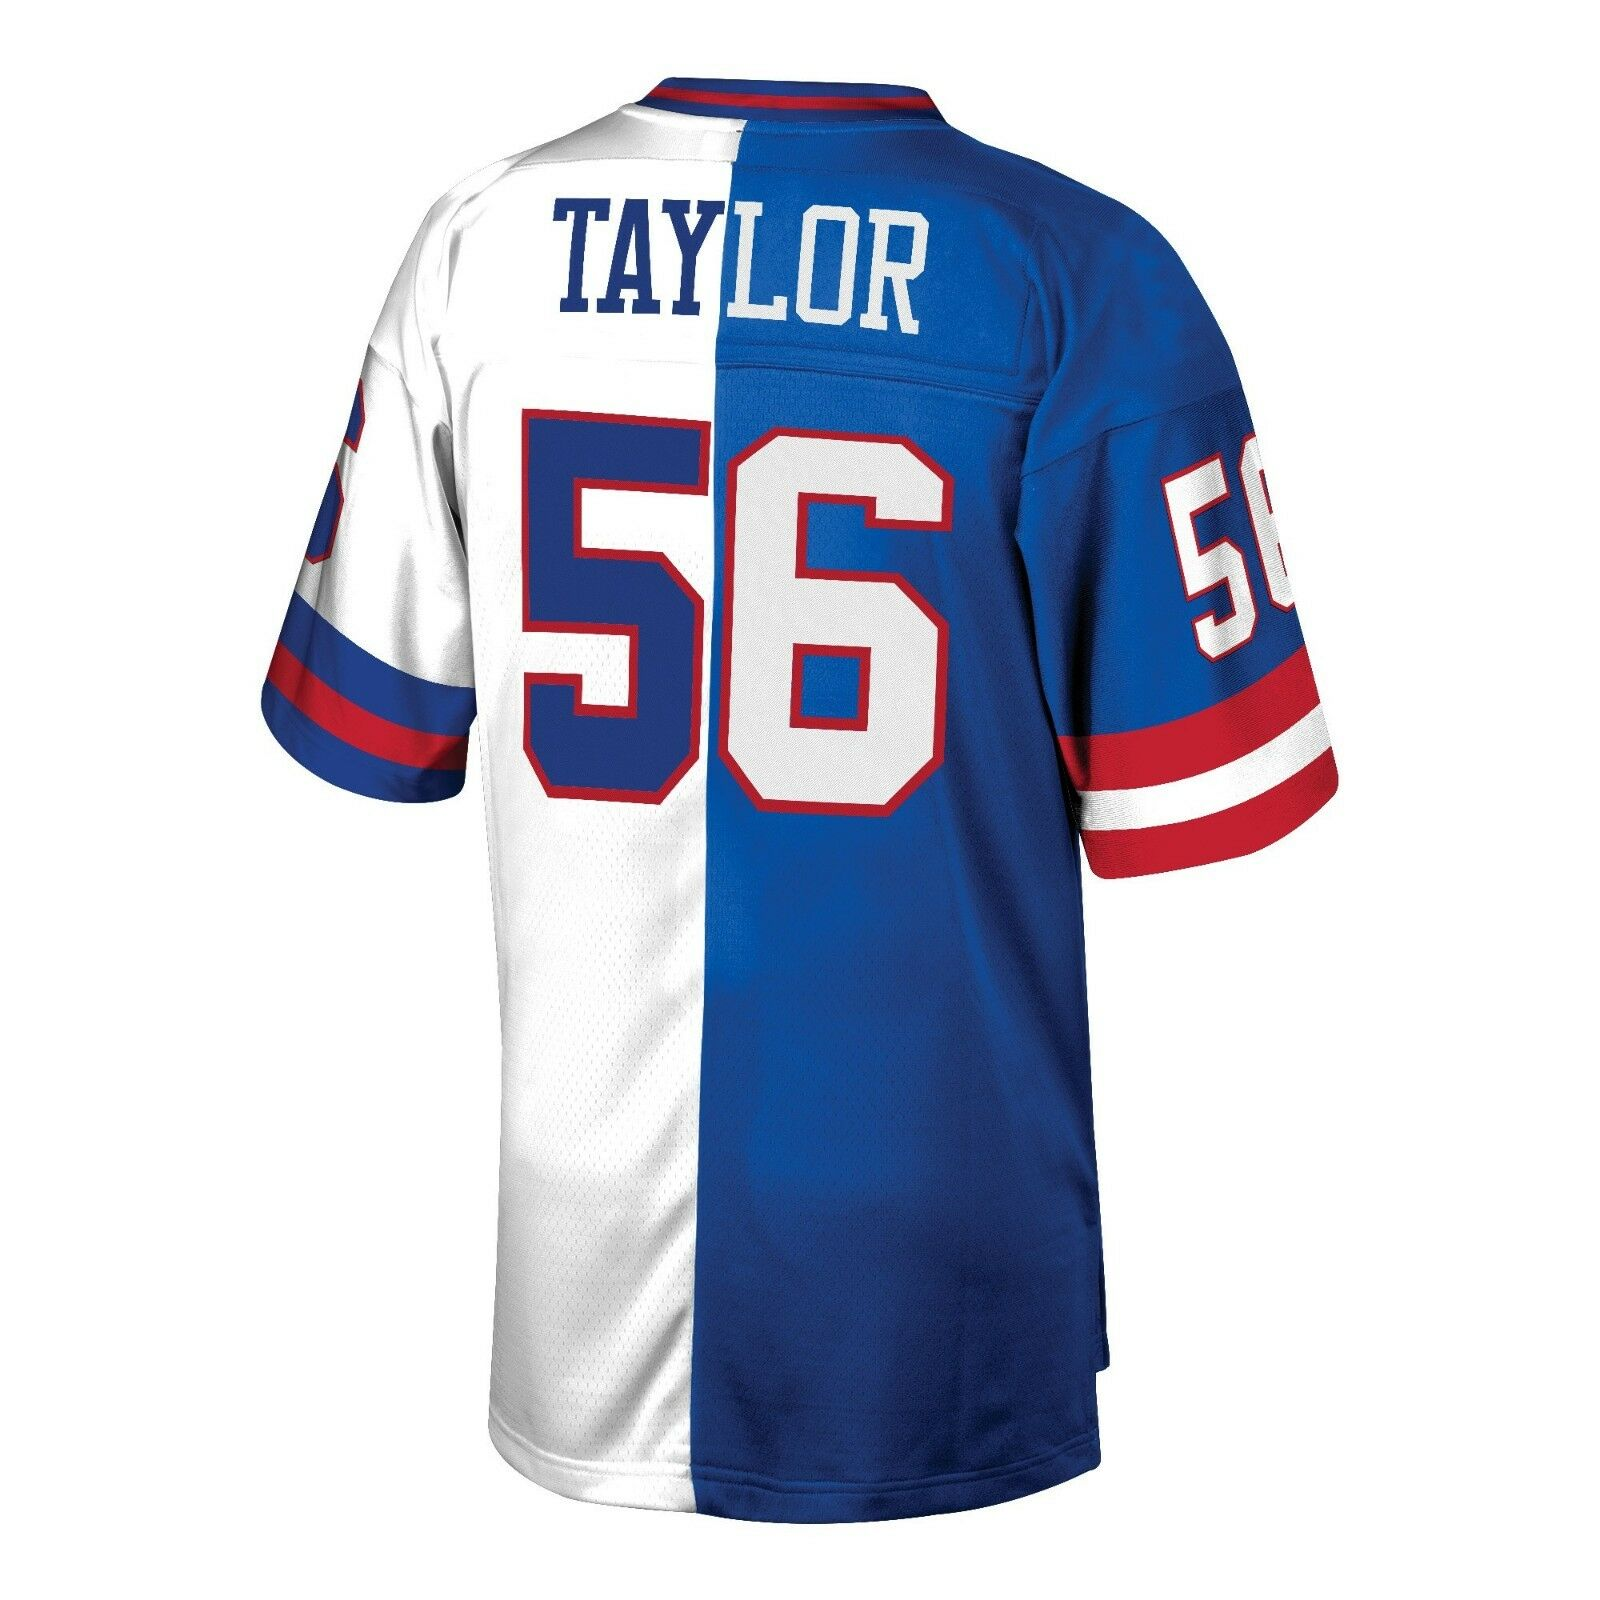 55ed52dbb ... York Giants 1986 Lawrence Taylor. Mitchell & Ness NFL Giants Jersey